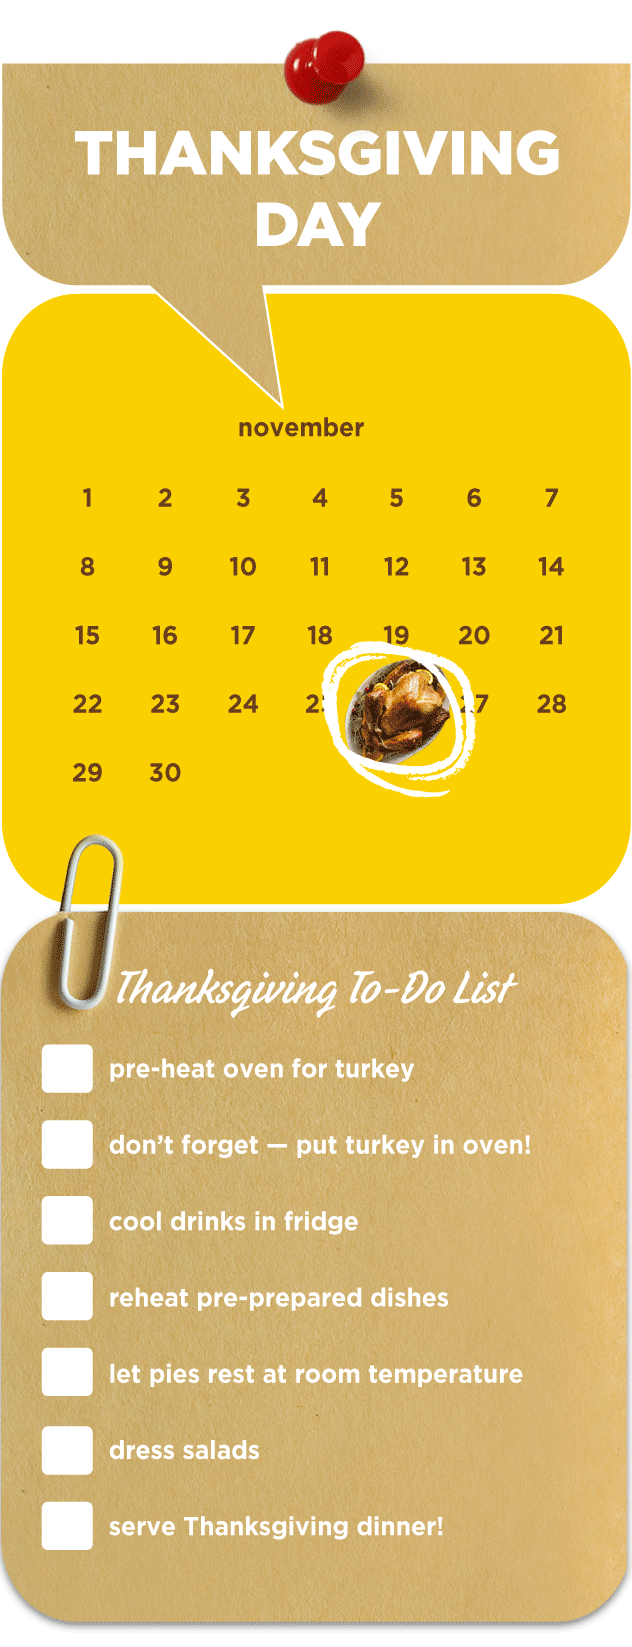 Thanksgiving-Day_Thanksgiving-Checklist_PAM_2015.png